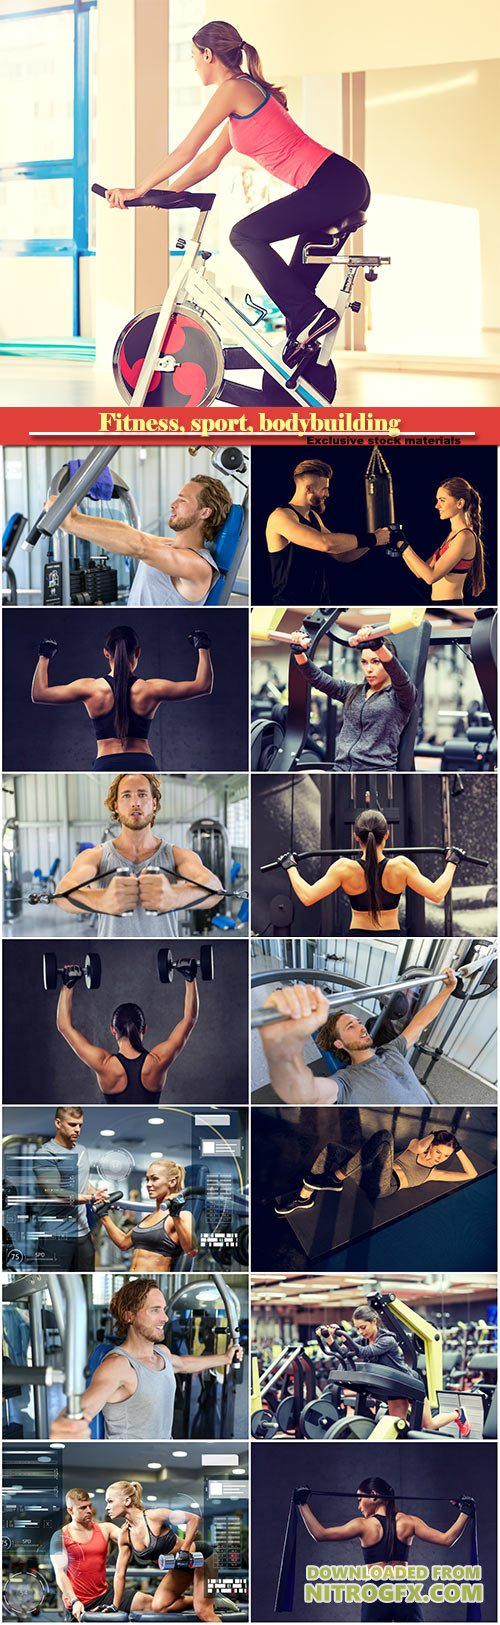 Fitness, sport, bodybuilding, exercising and people concept